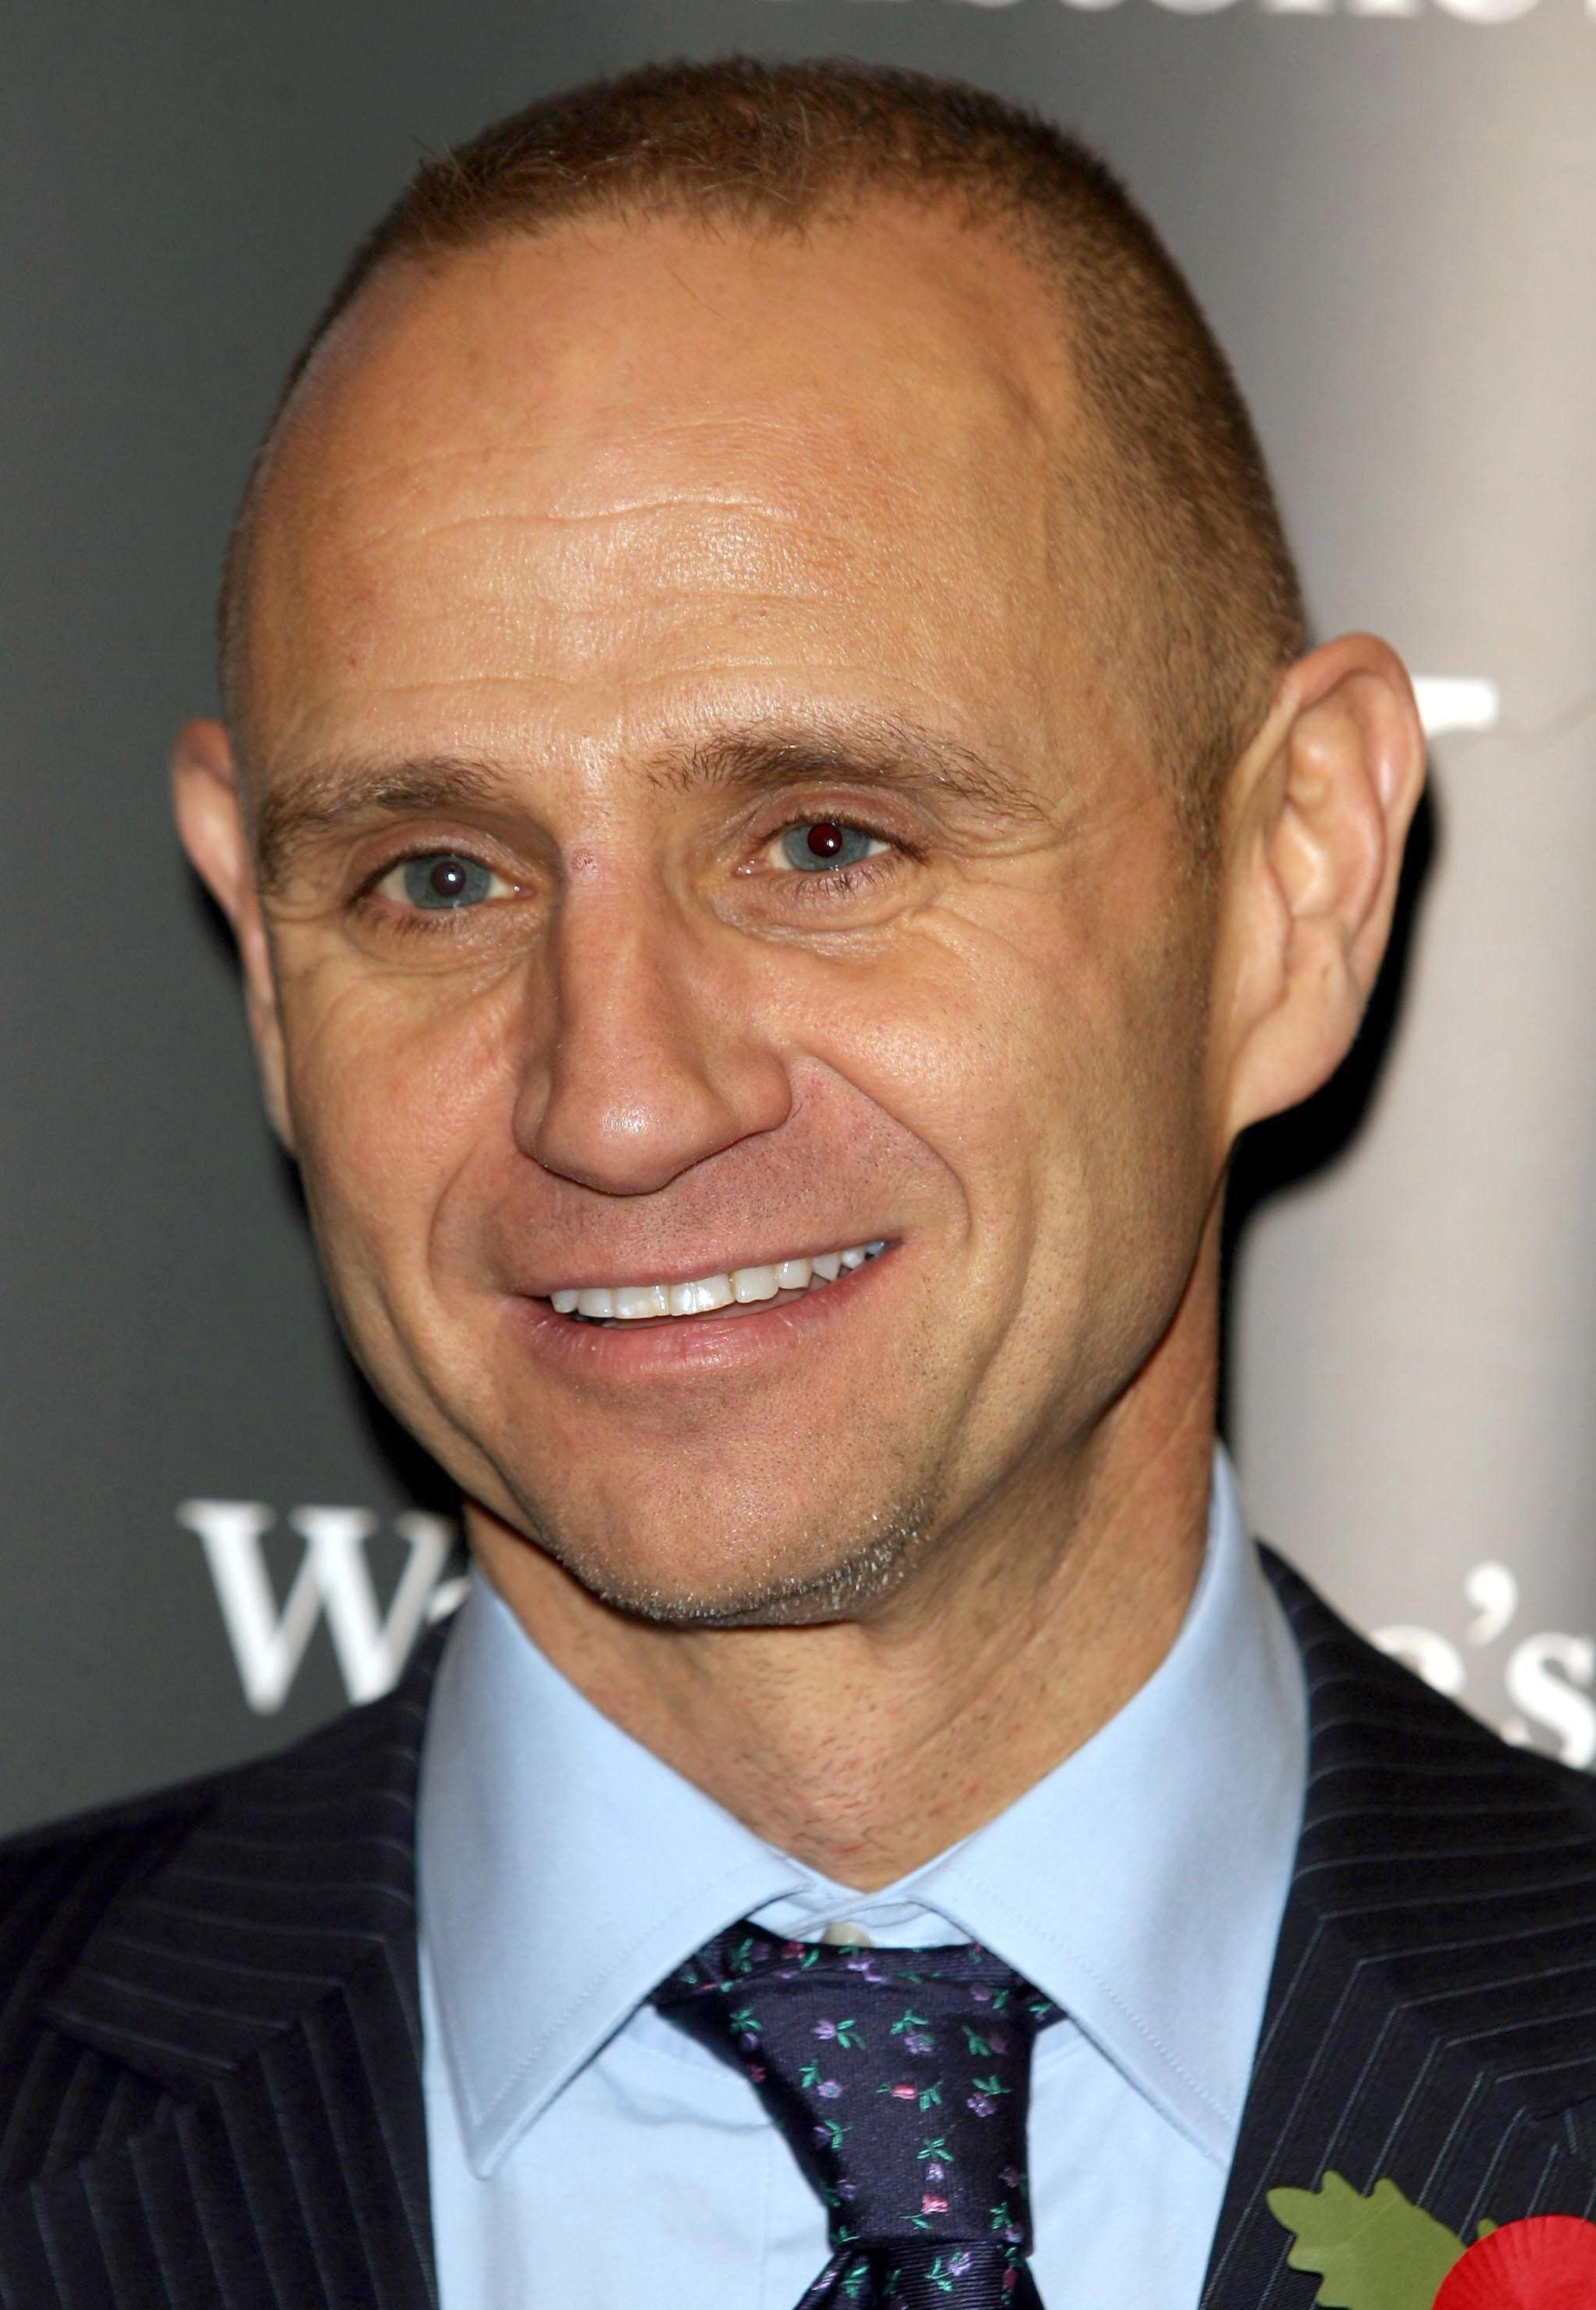 BBC's Evan Davis Forced To Clarify He's Not A Britain First